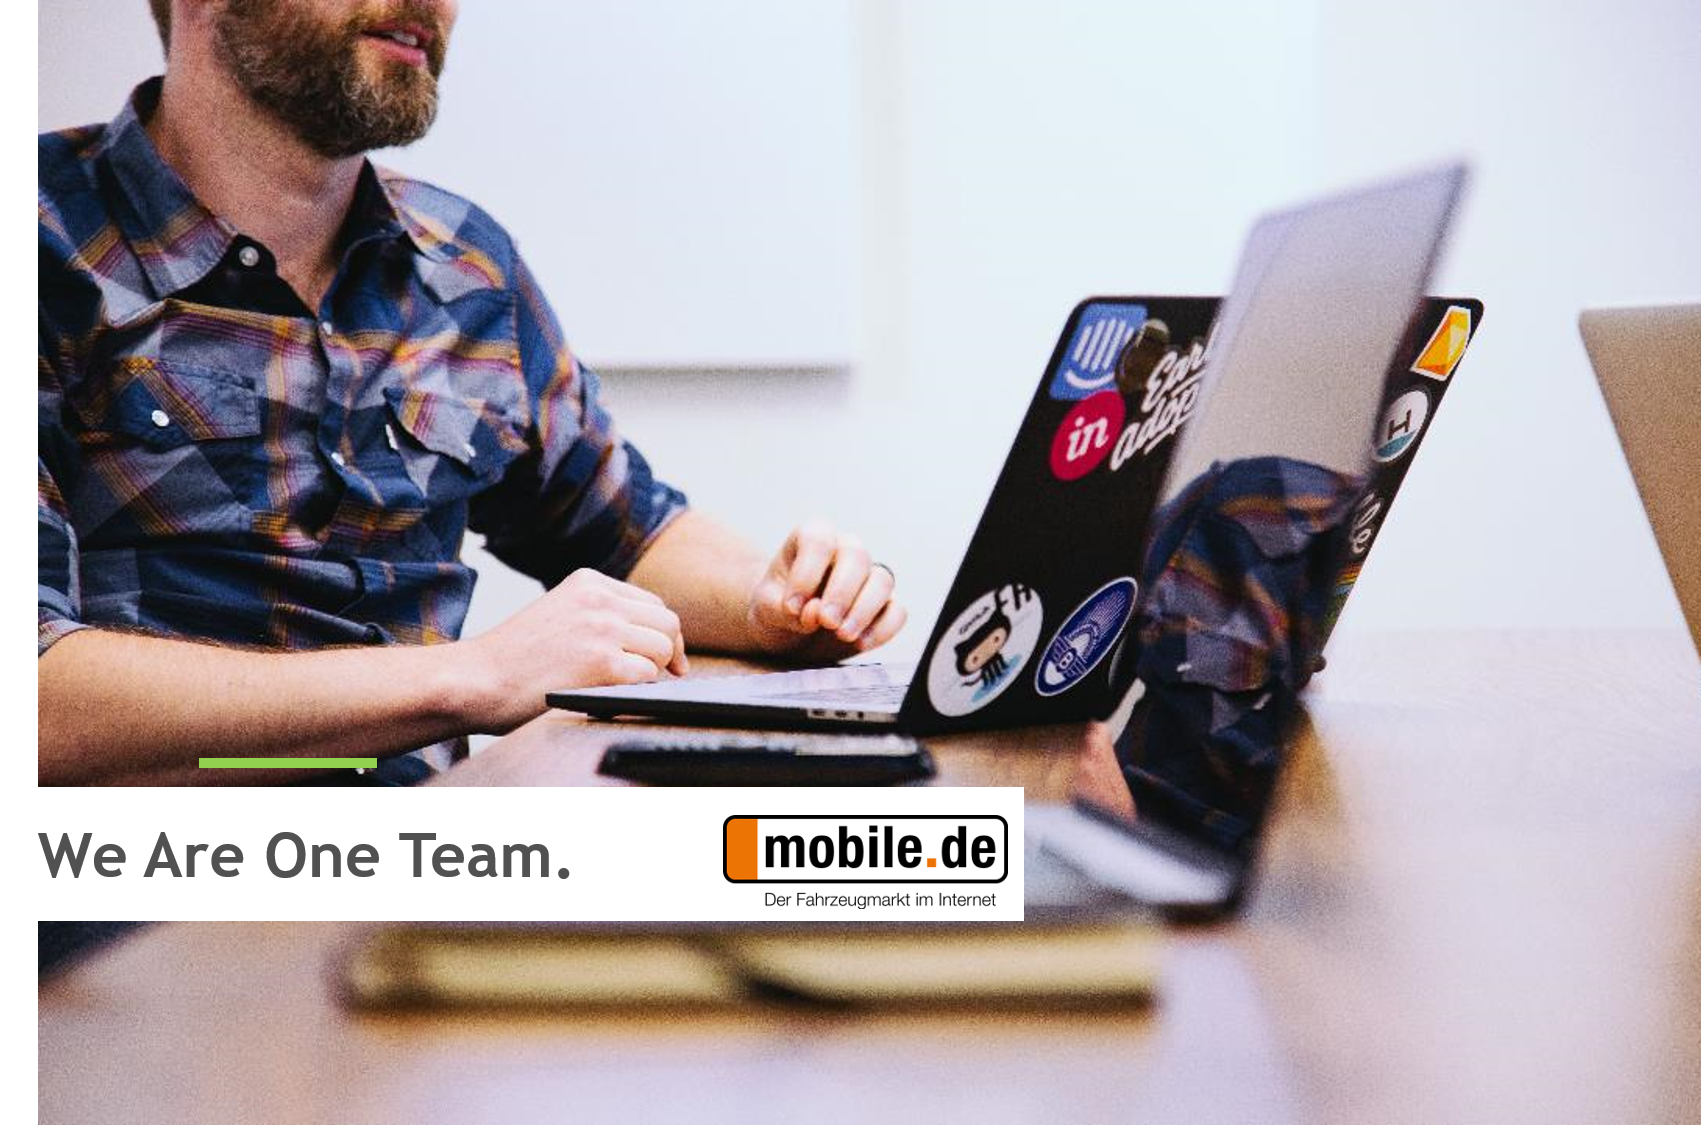 Account Manager (m/w/d) bei mobile.de in Kleinmachnow/Berlin